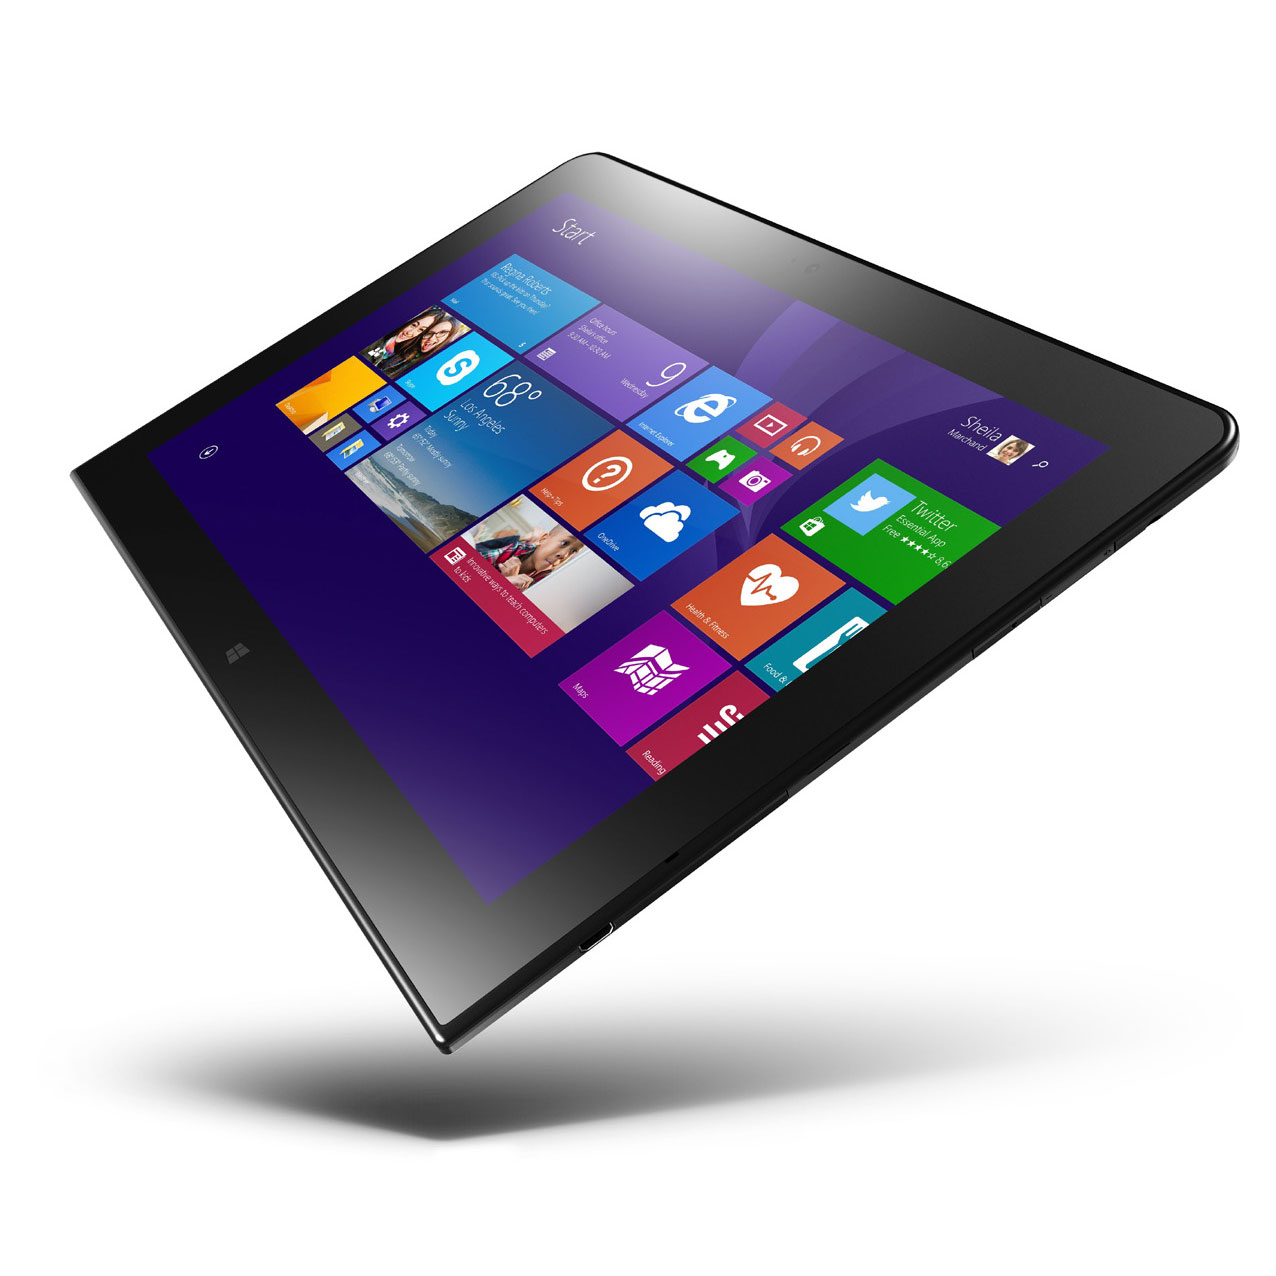 lenovo thinkpad 10 20c1000mfr tablette tactile lenovo sur. Black Bedroom Furniture Sets. Home Design Ideas